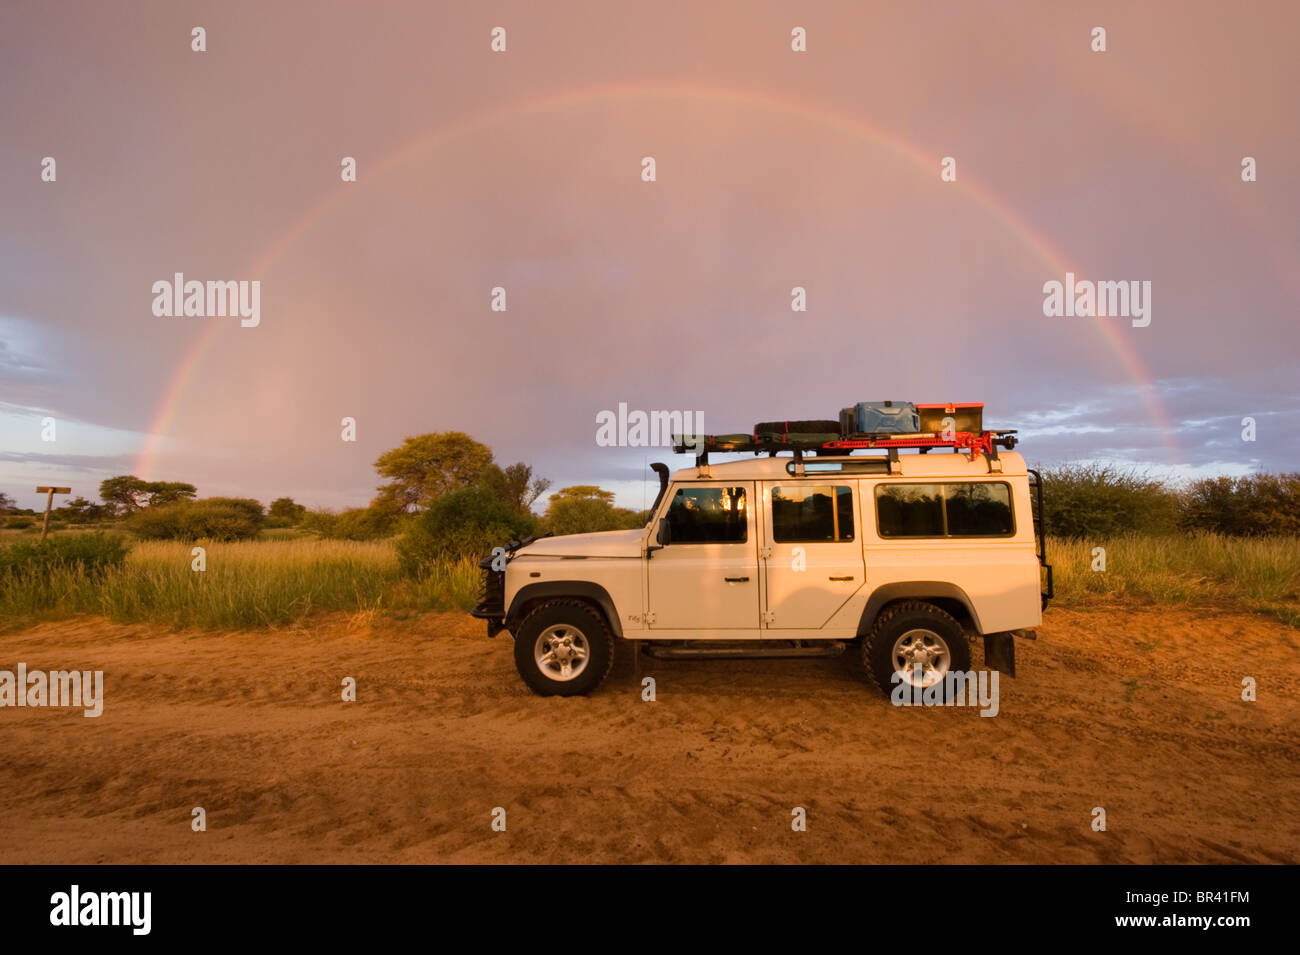 Rainbow over a Land Rover - Stock Image